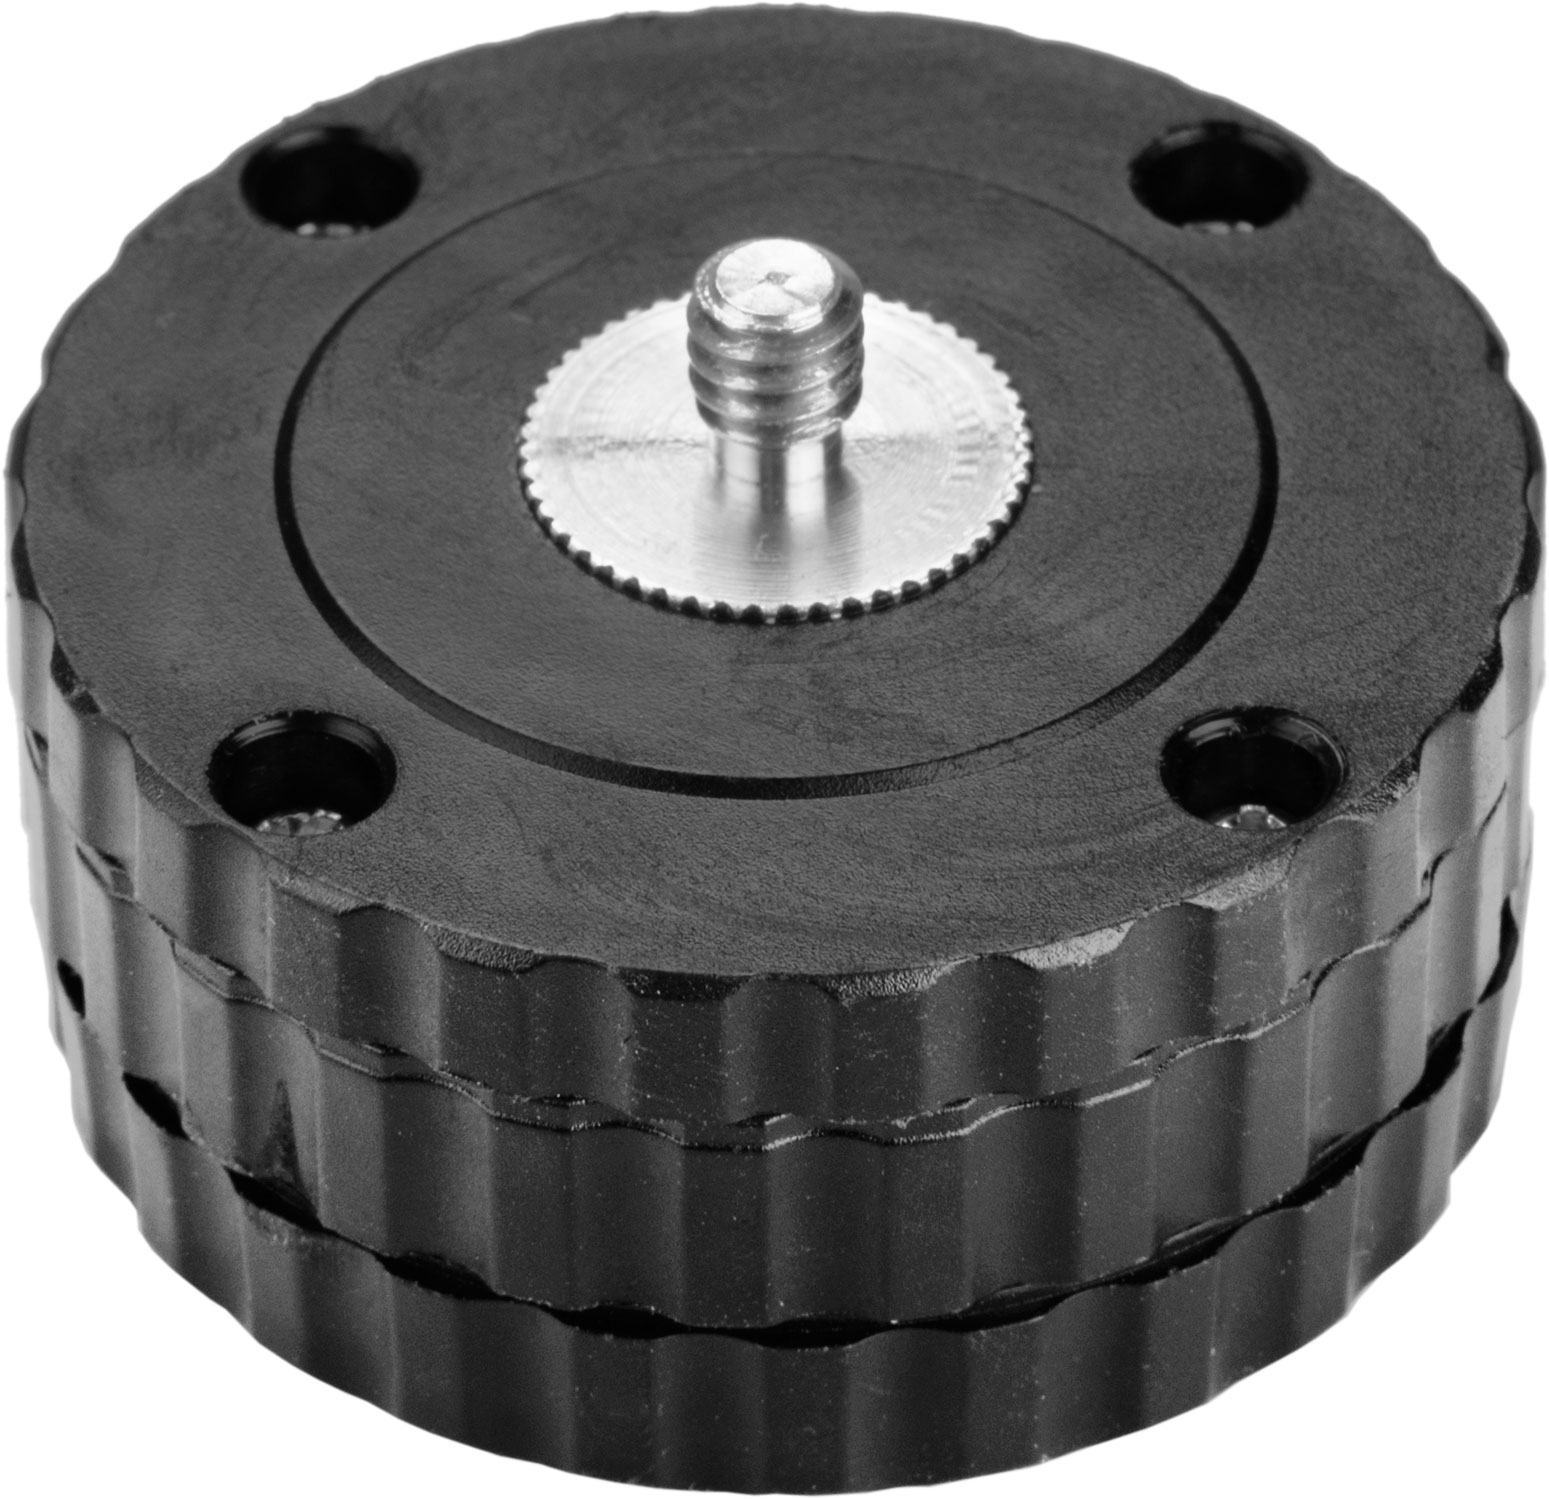 """Rotating adaptor , 1/4"""" mount, for tripods, inside thread 5/8 """"- mount 1/4"""""""